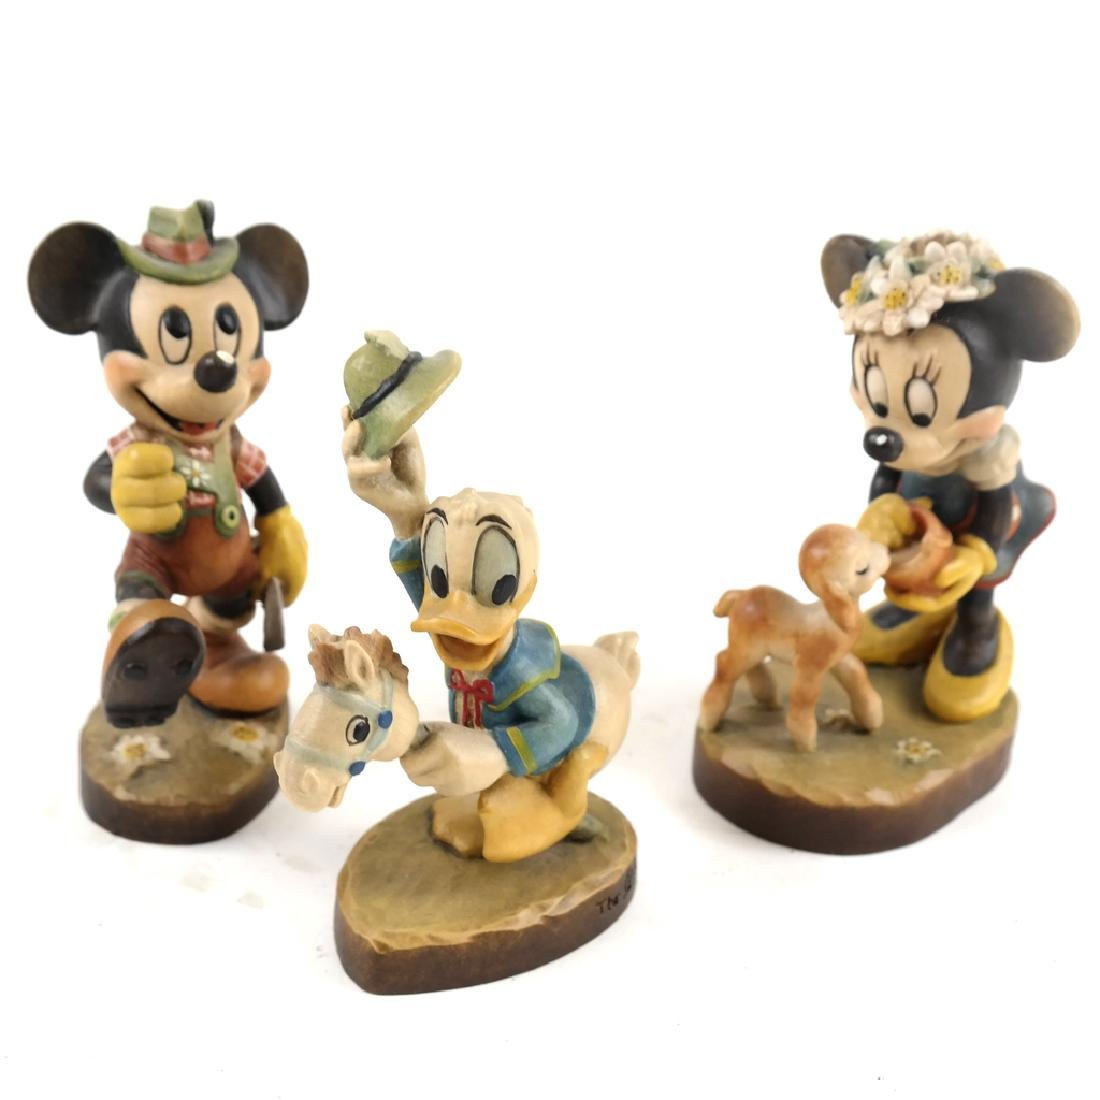 Disney Wood Figures by Anri Ulrich Bernaldi